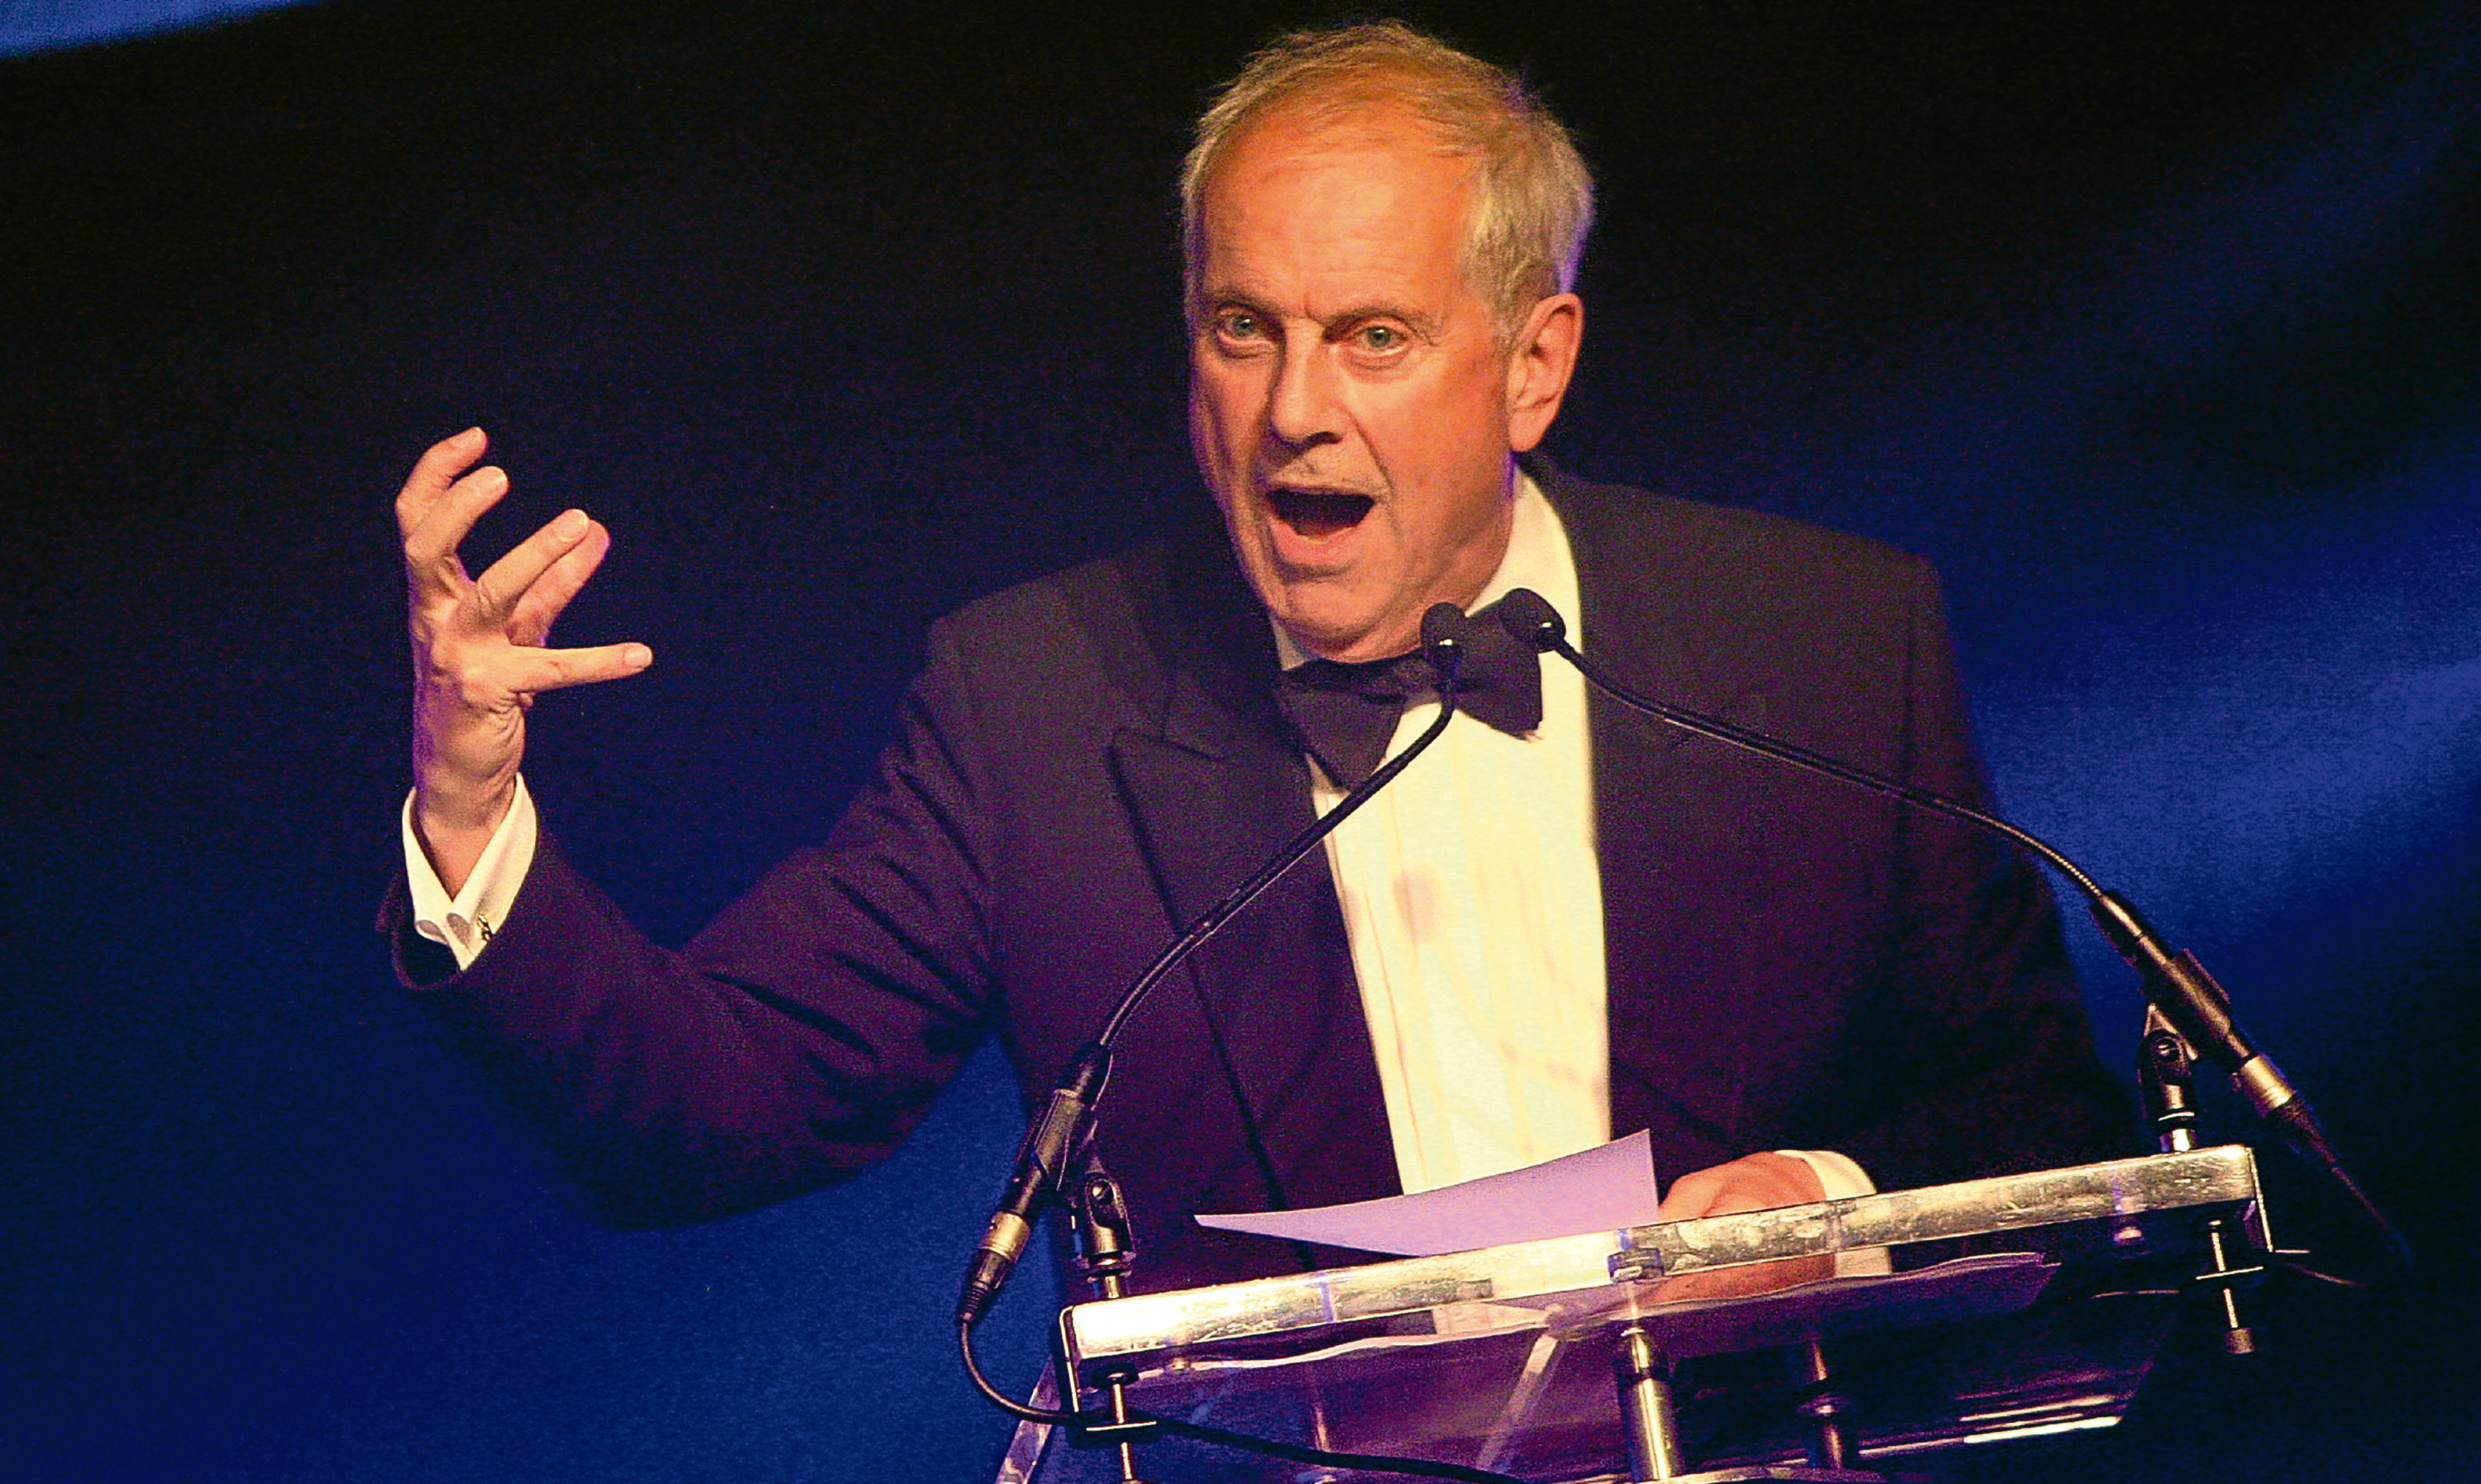 Gyles Brandreth takes charge at the 2016 Courier Business Awards. He is to return for 2017.